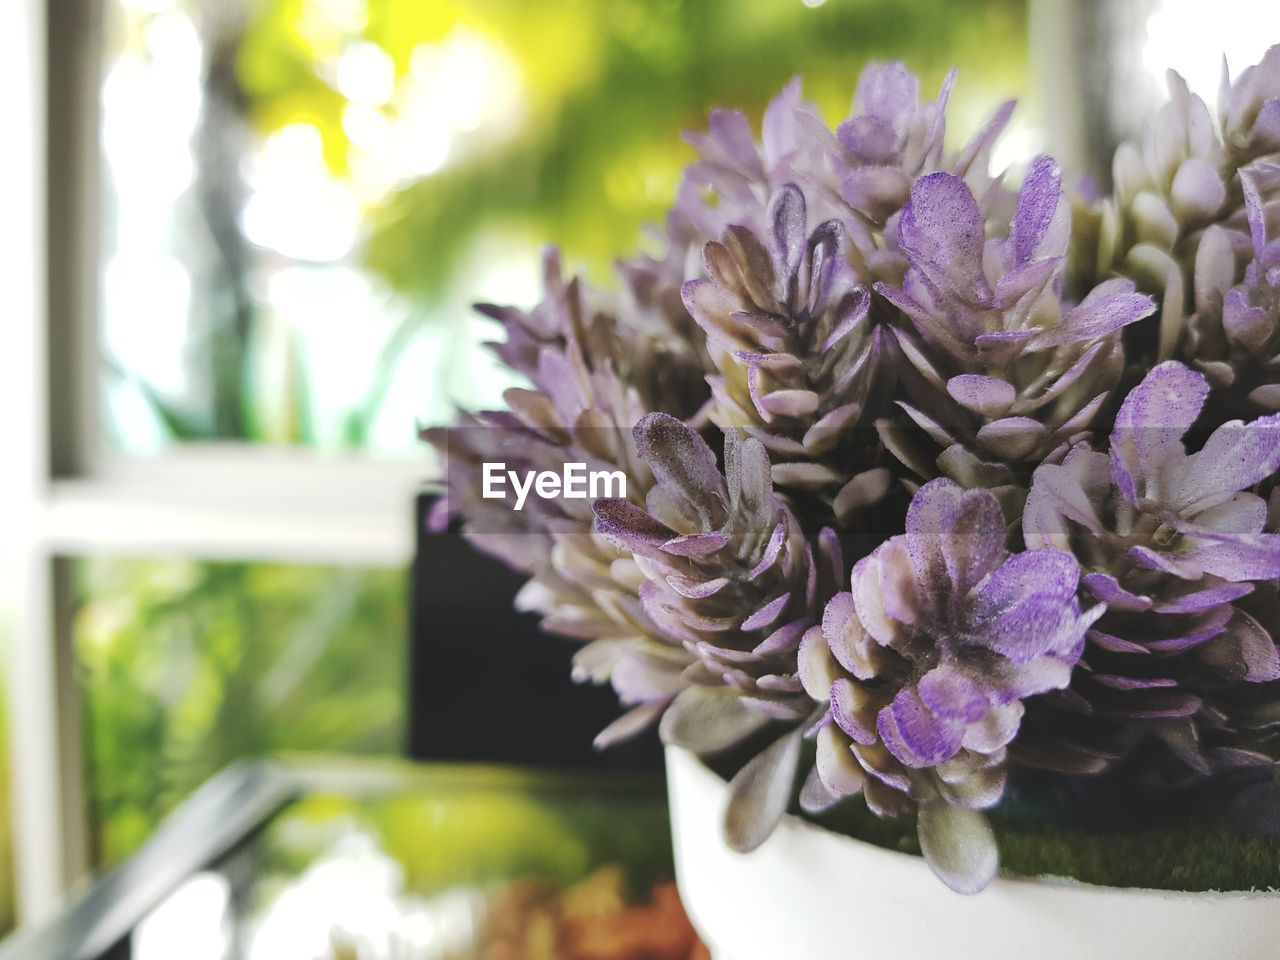 flower, plant, flowering plant, vulnerability, freshness, beauty in nature, fragility, focus on foreground, close-up, purple, nature, petal, no people, flower head, inflorescence, day, growth, selective focus, outdoors, botany, bunch of flowers, flower arrangement, bouquet, lilac